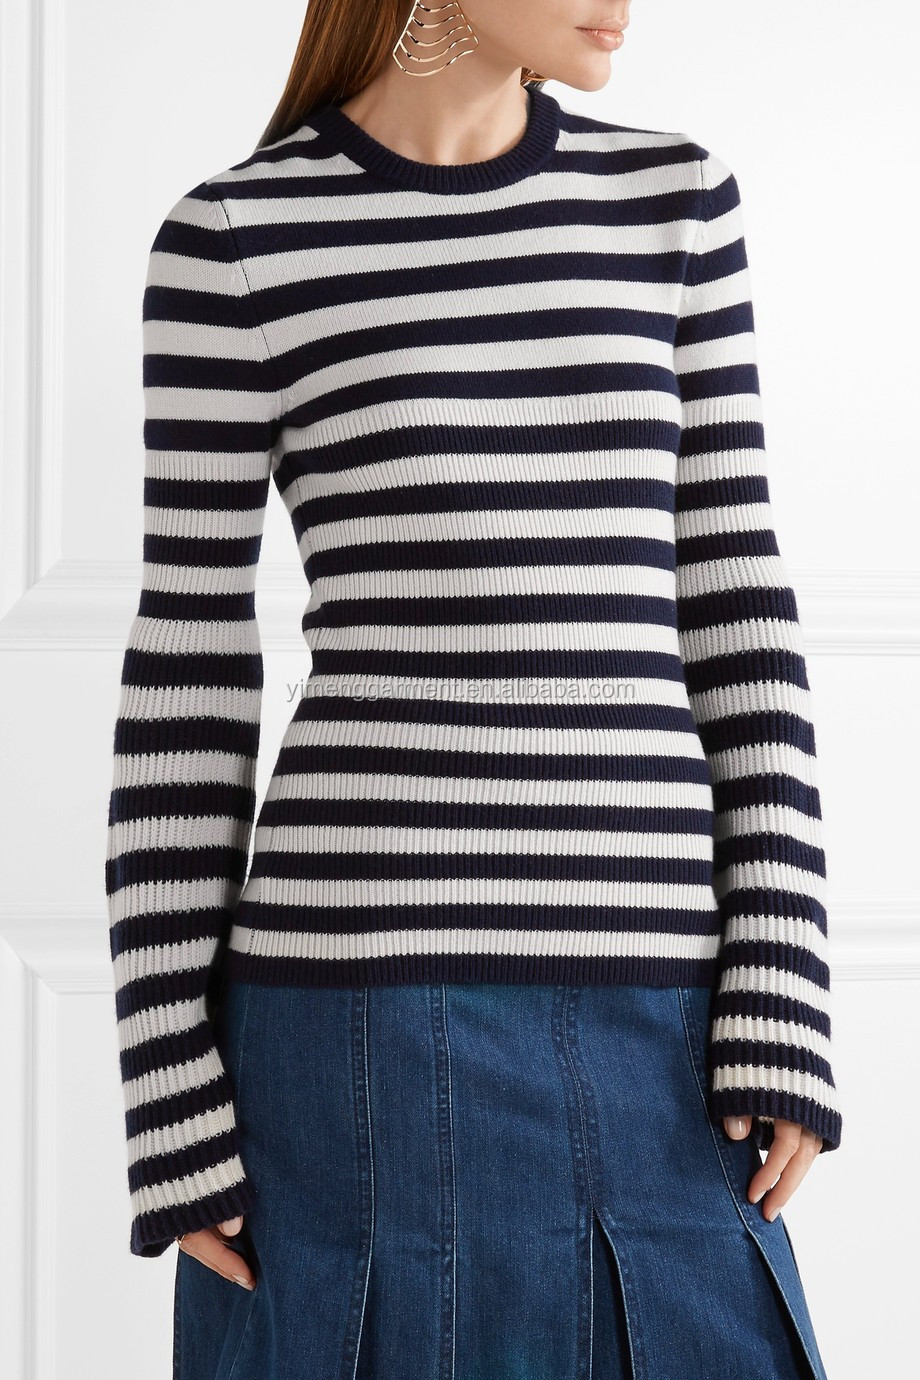 Among Best Selling Bell Sleeved Navy Blue And White ...